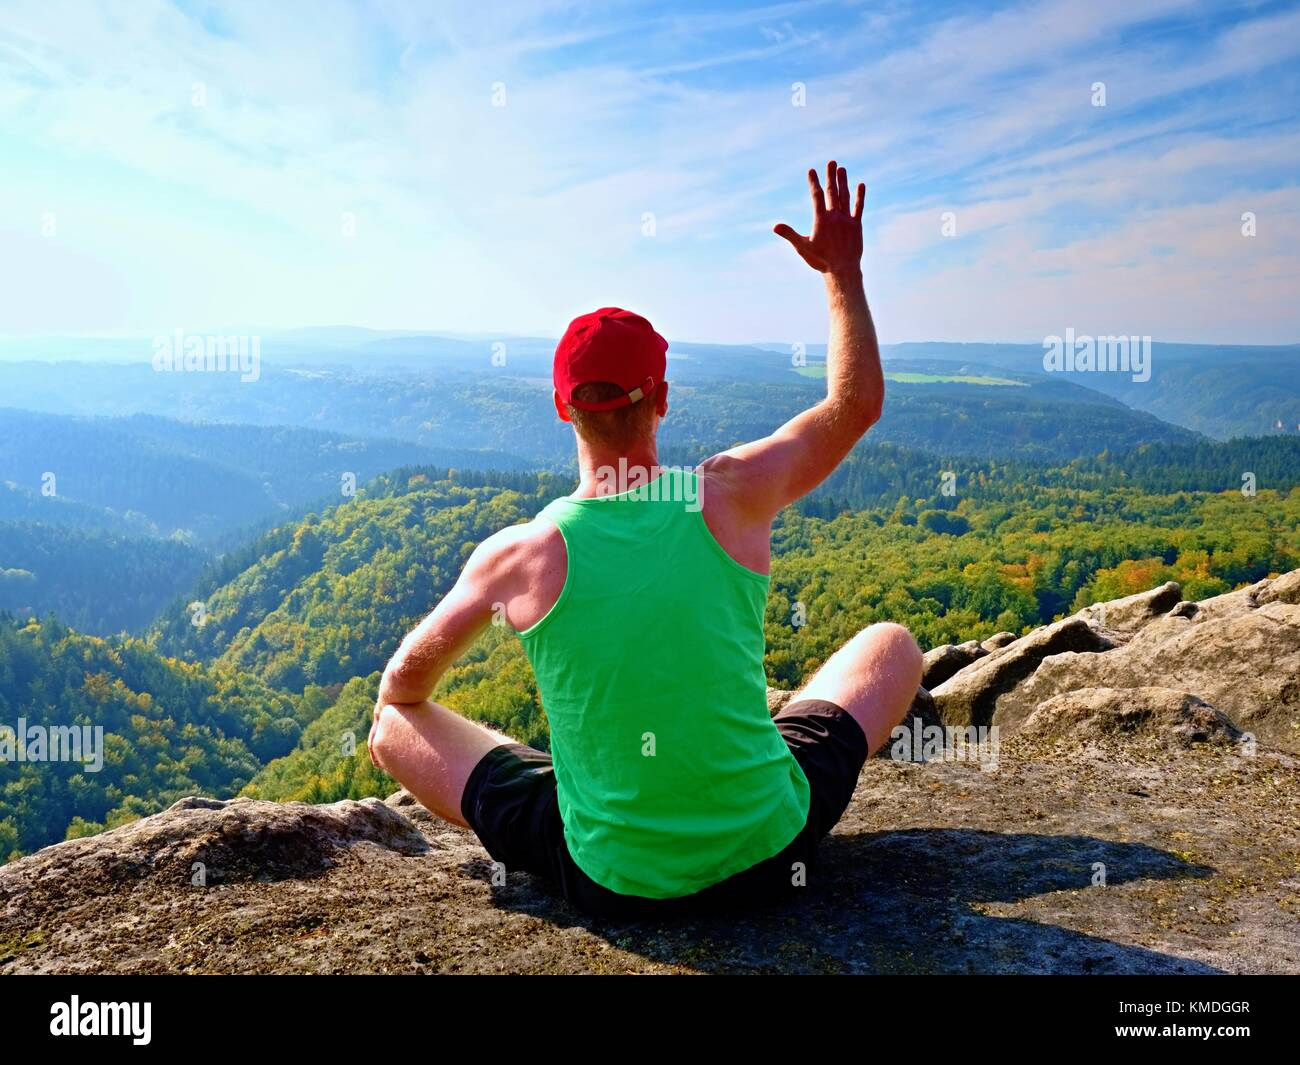 Slim body hiker in green singlet and black shorts sit on a rock, enjoy natural scenery. View into forest valley - Stock Image